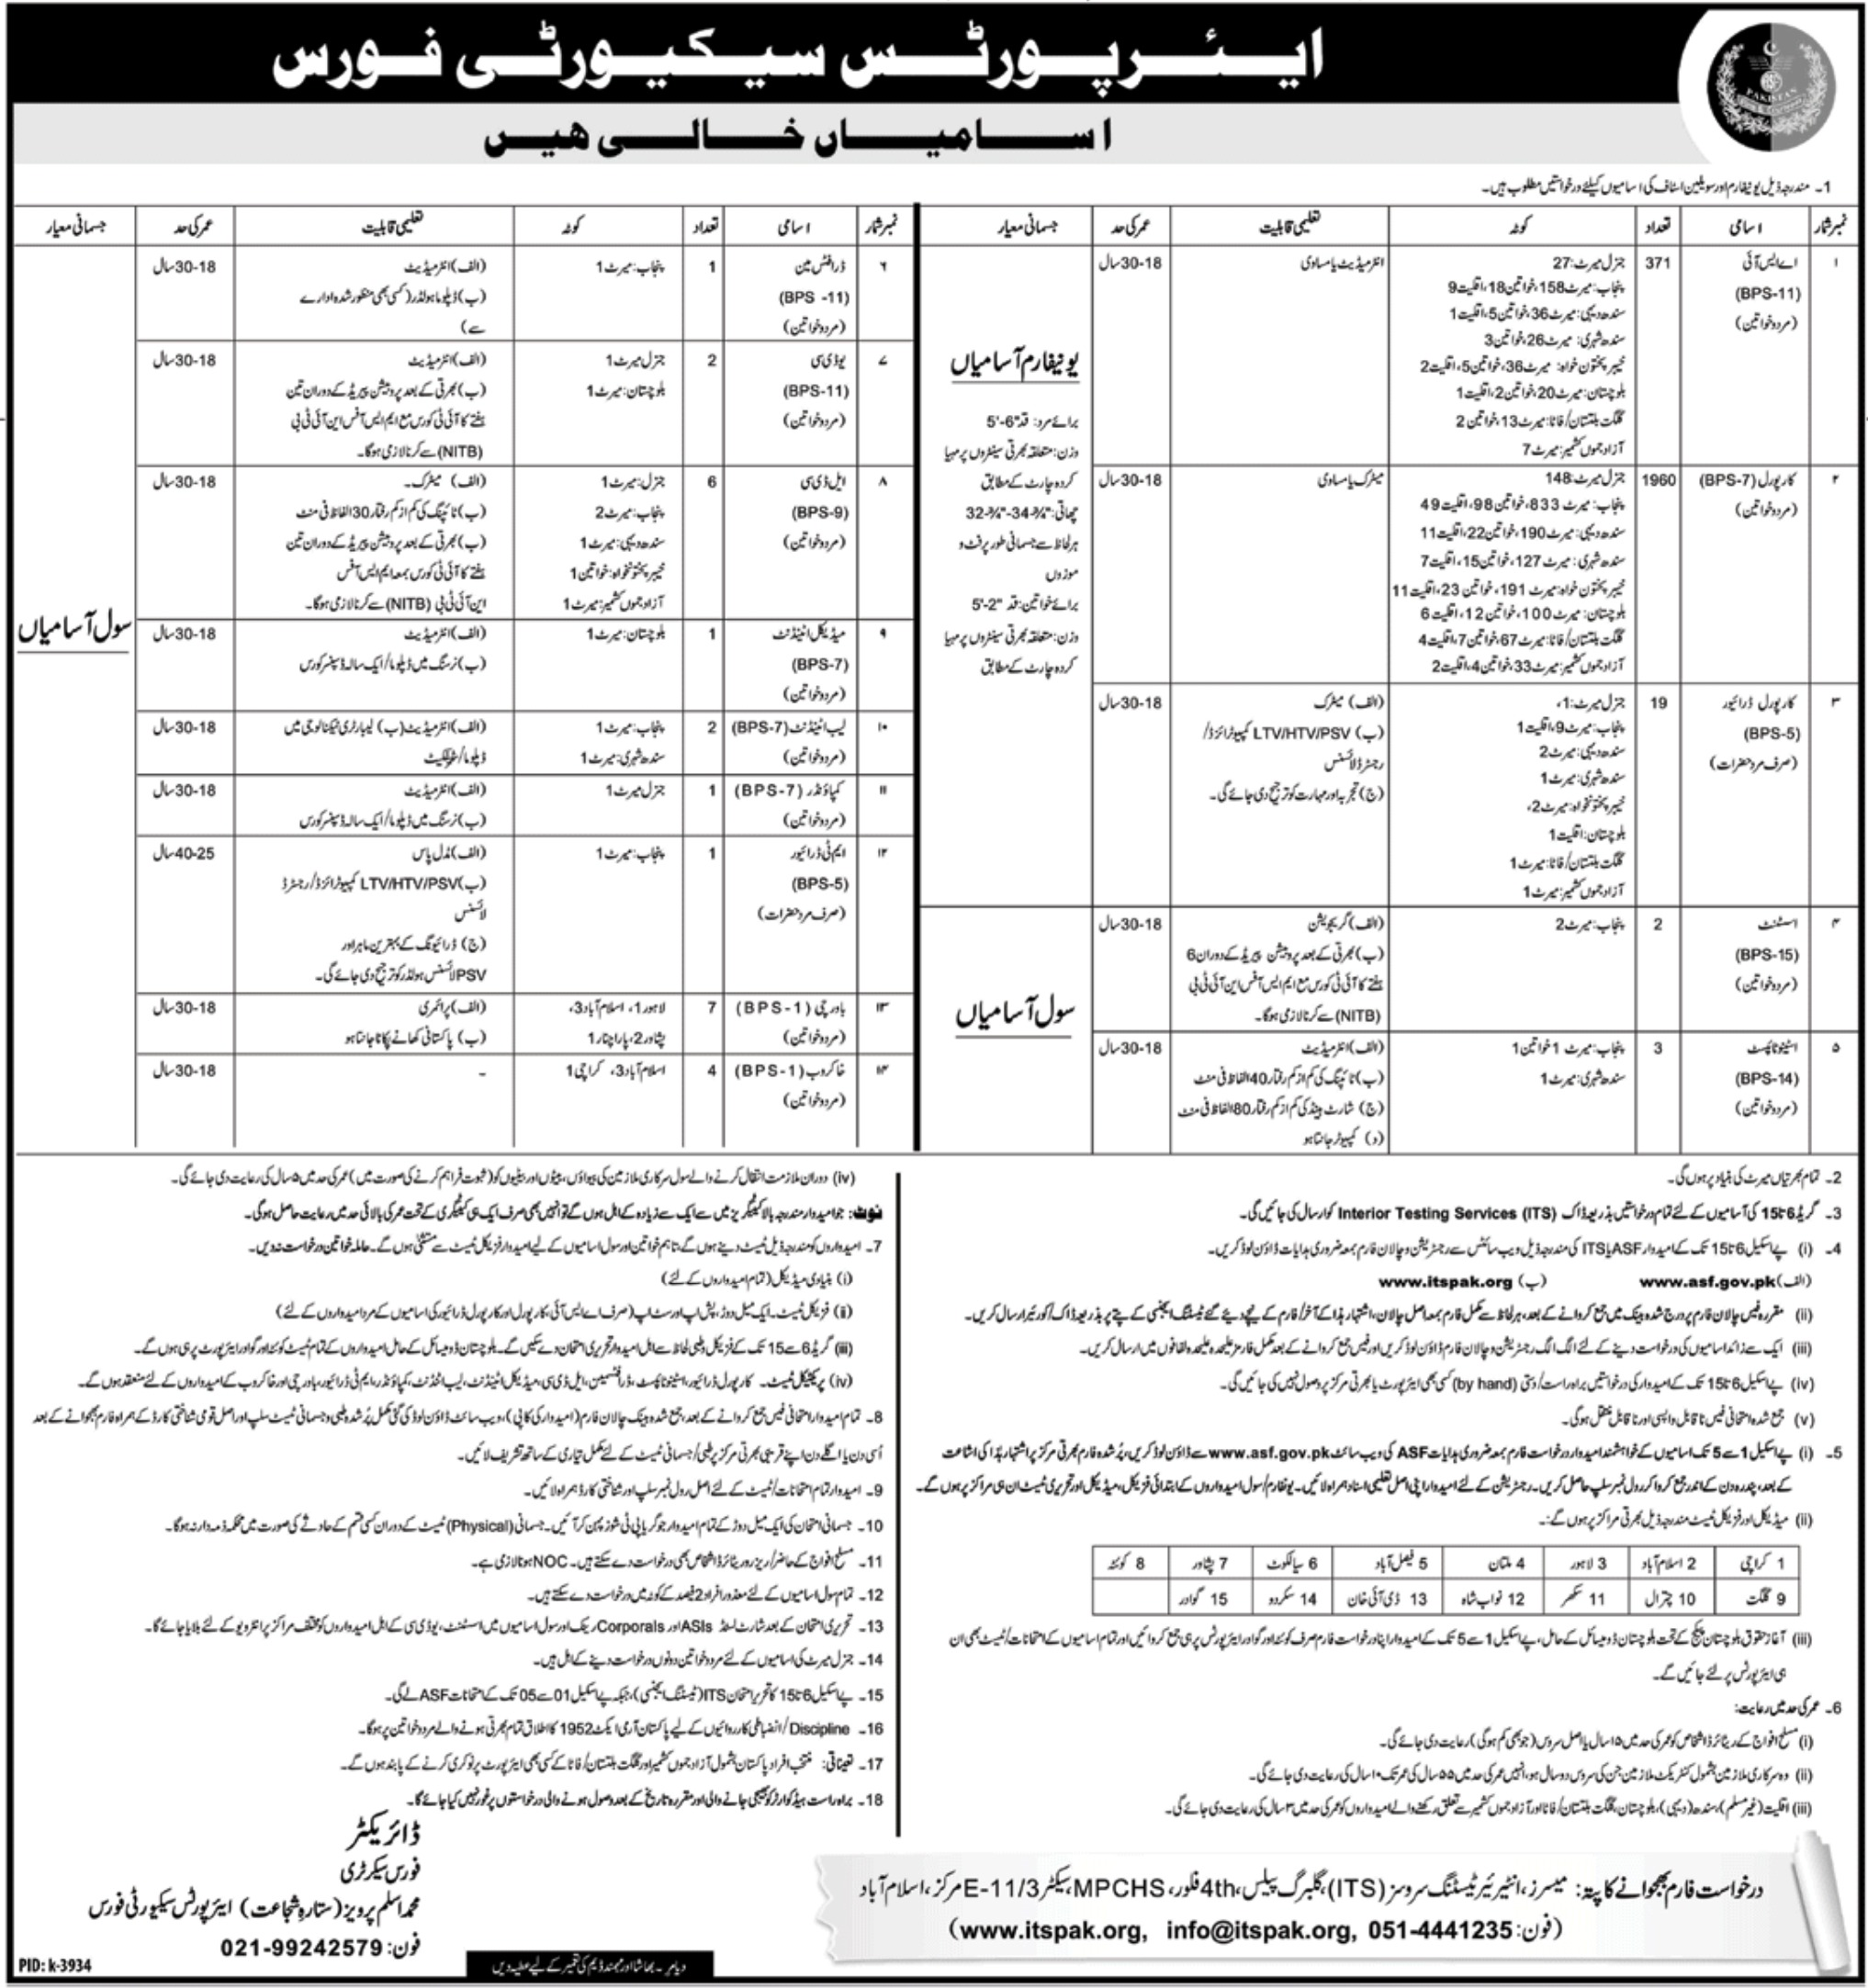 Airports Security Force ASF Jobs 2019 Apply through Interior Testing Service ITS